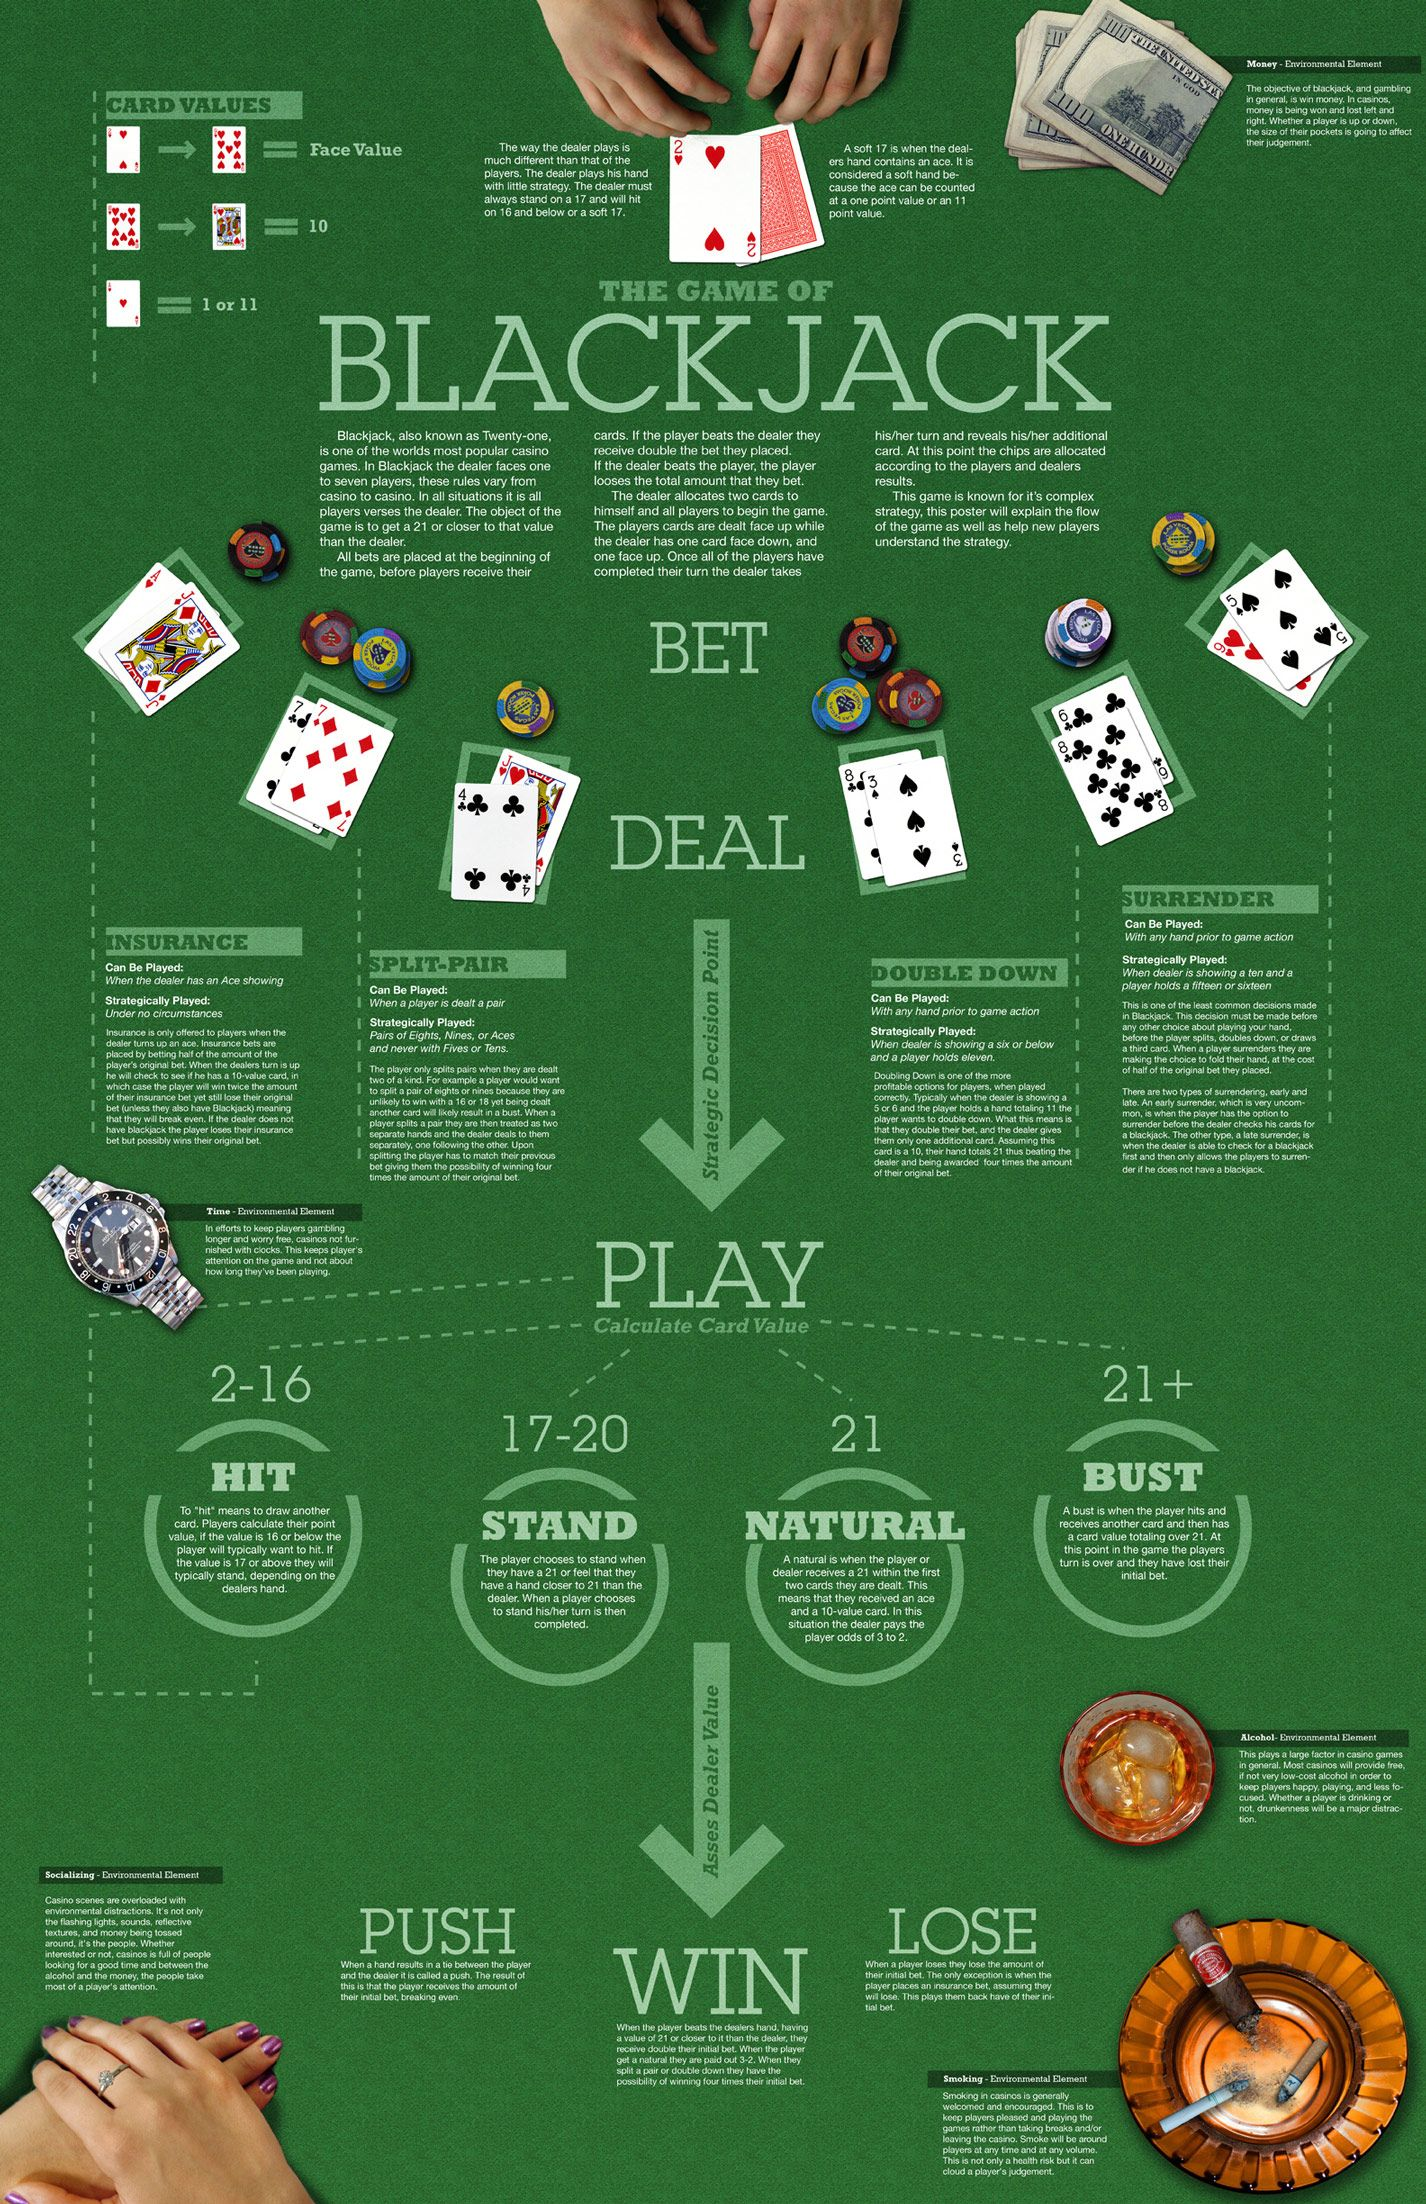 review online casinos - 3